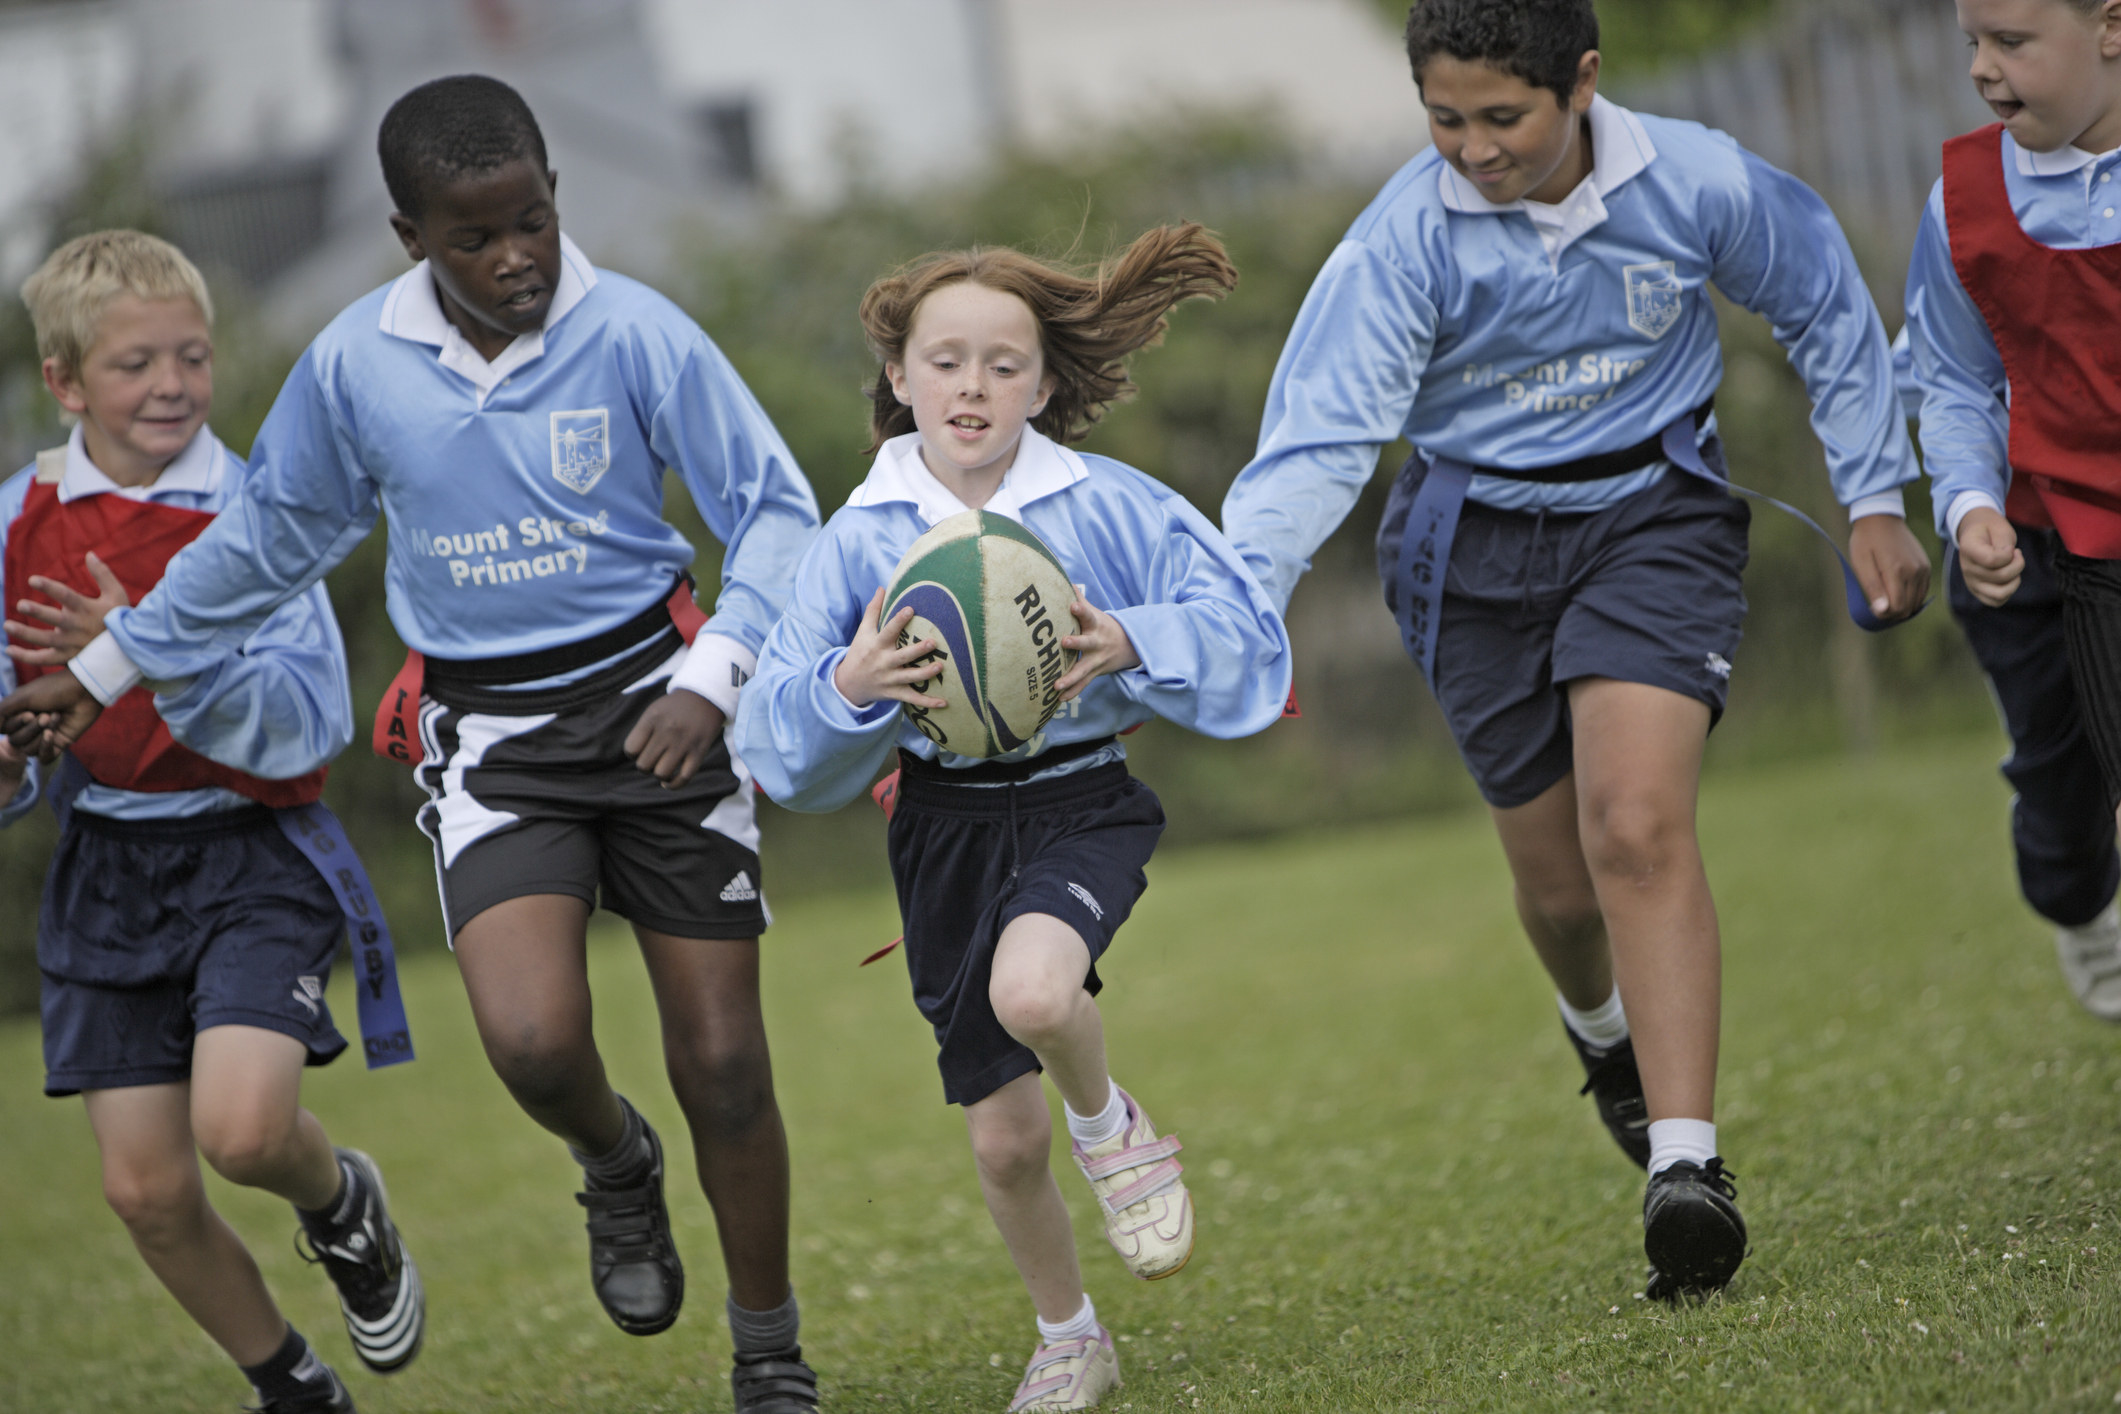 Children playing rugby at school